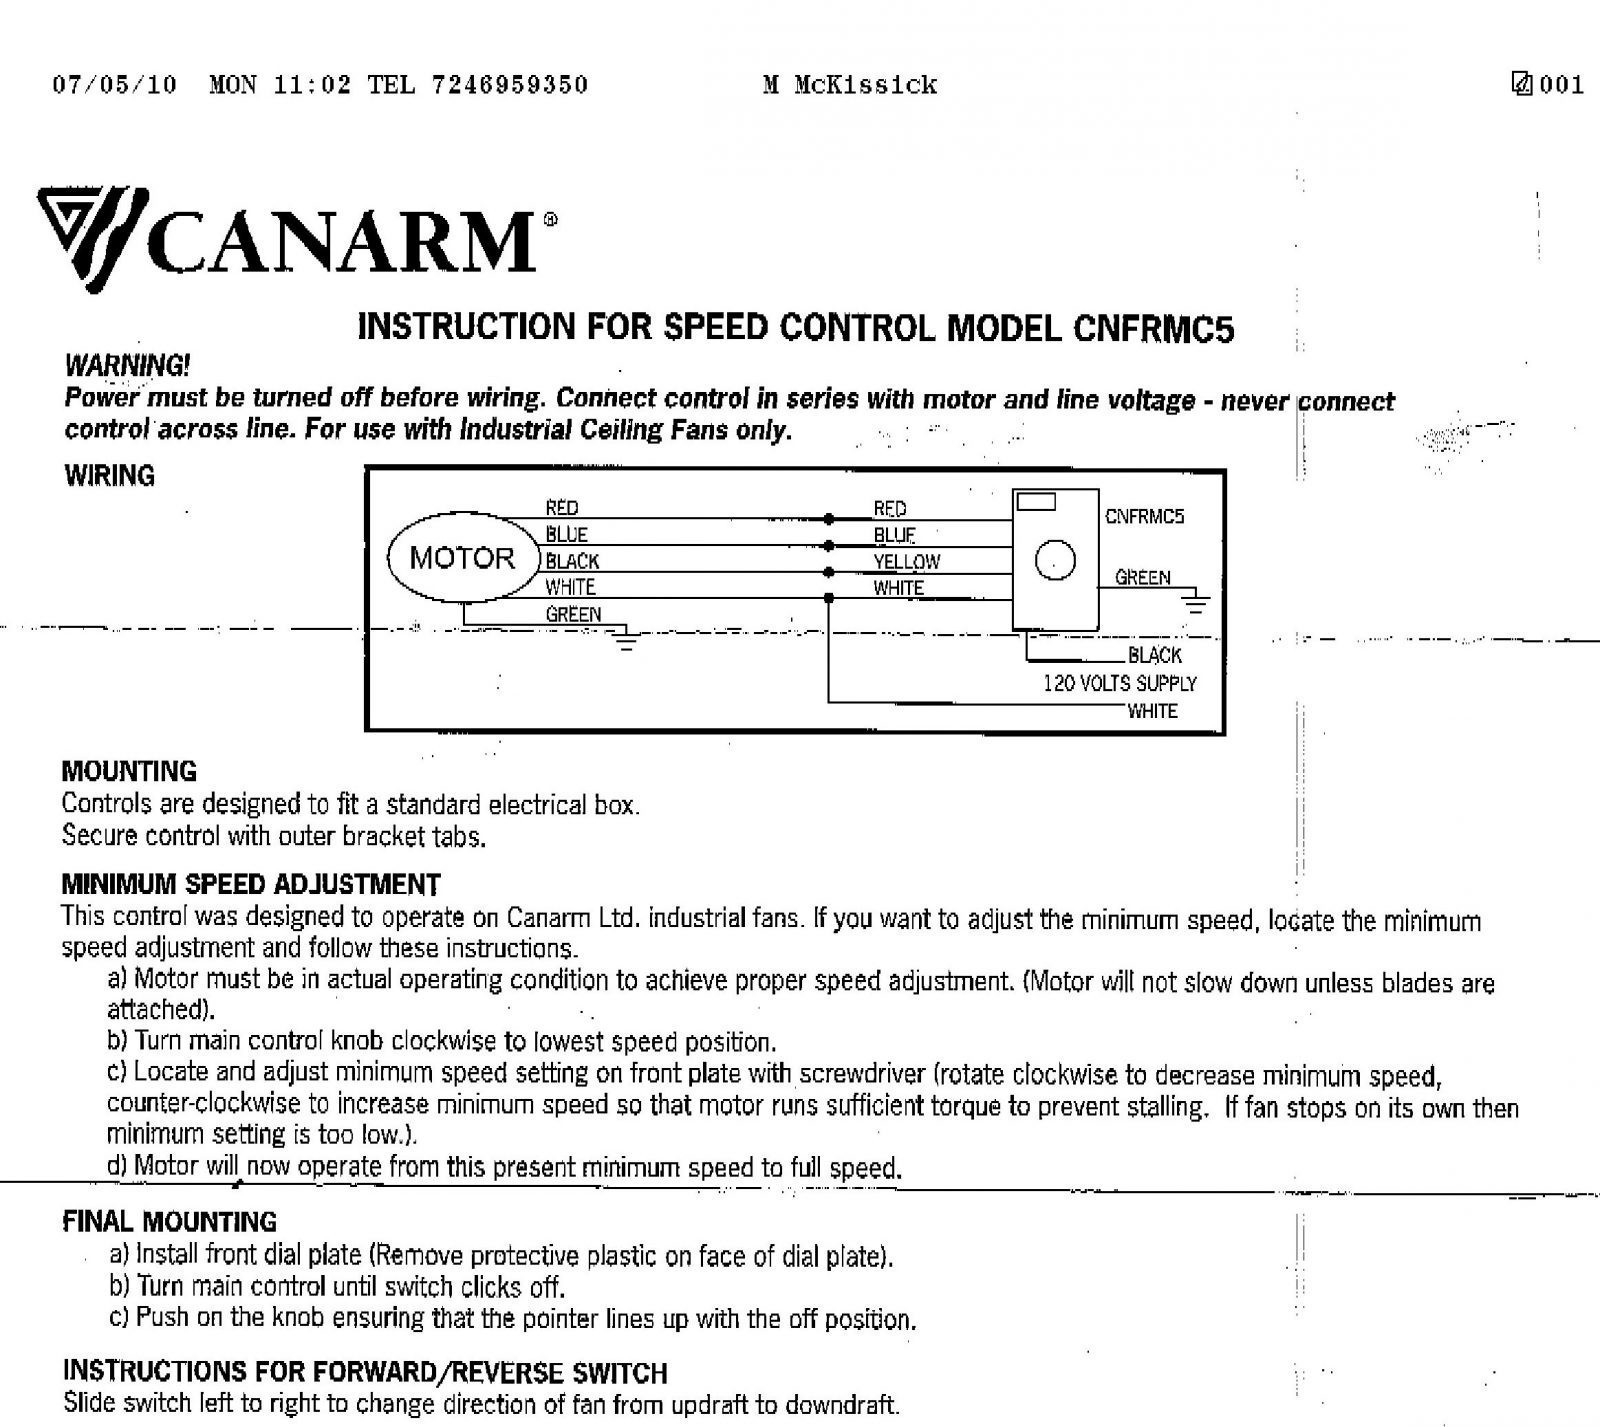 Canarm Ceiling Fan Wiring Diagram - Wiring Diagram for Canarm Exhaust Fan  Fresh Industrial Exhaust Fan